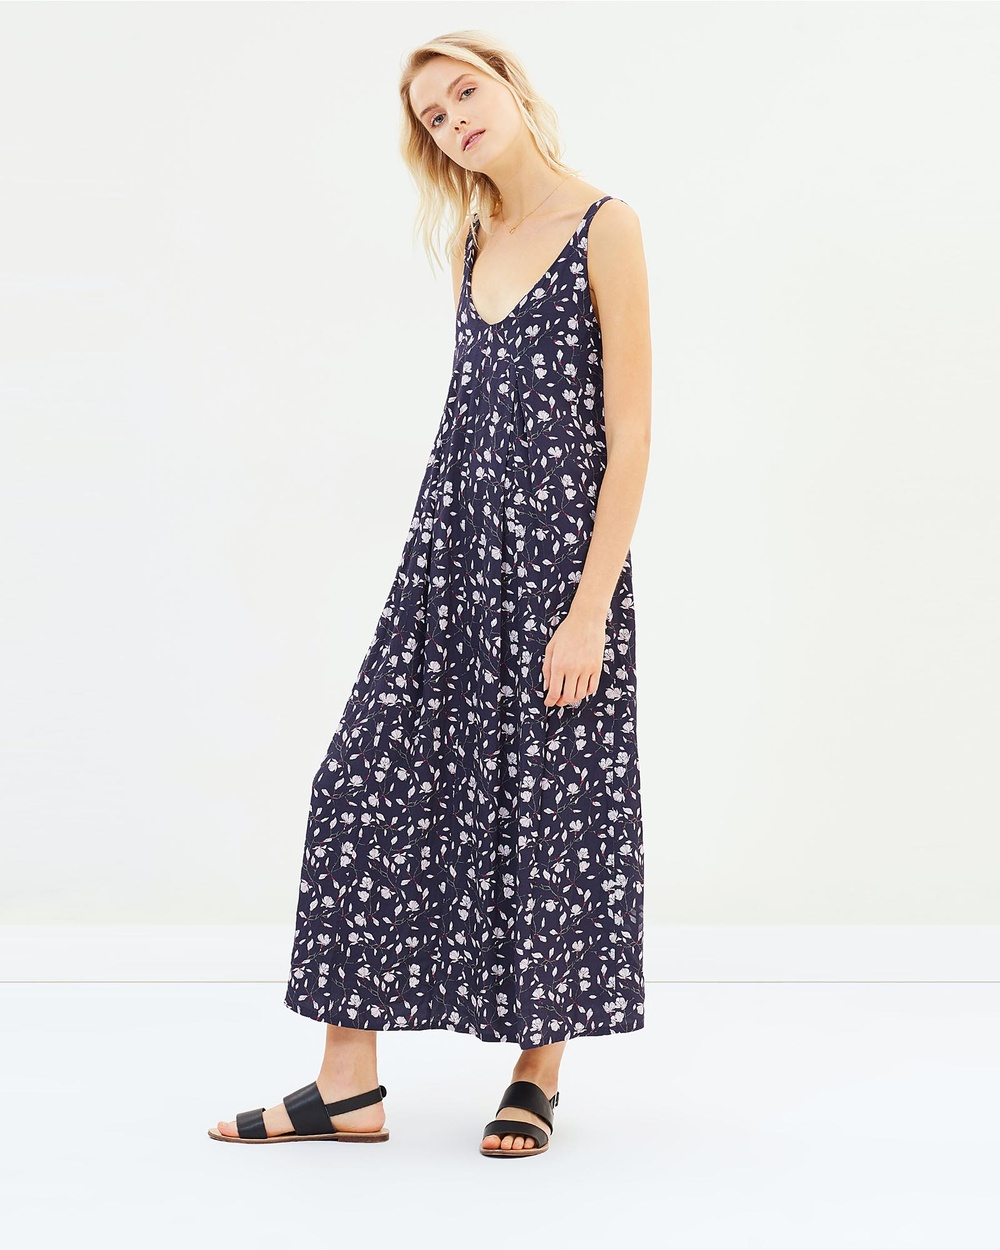 Ryder Remi Printed Dress Dresses Marine Magnolia Remi Printed Dress